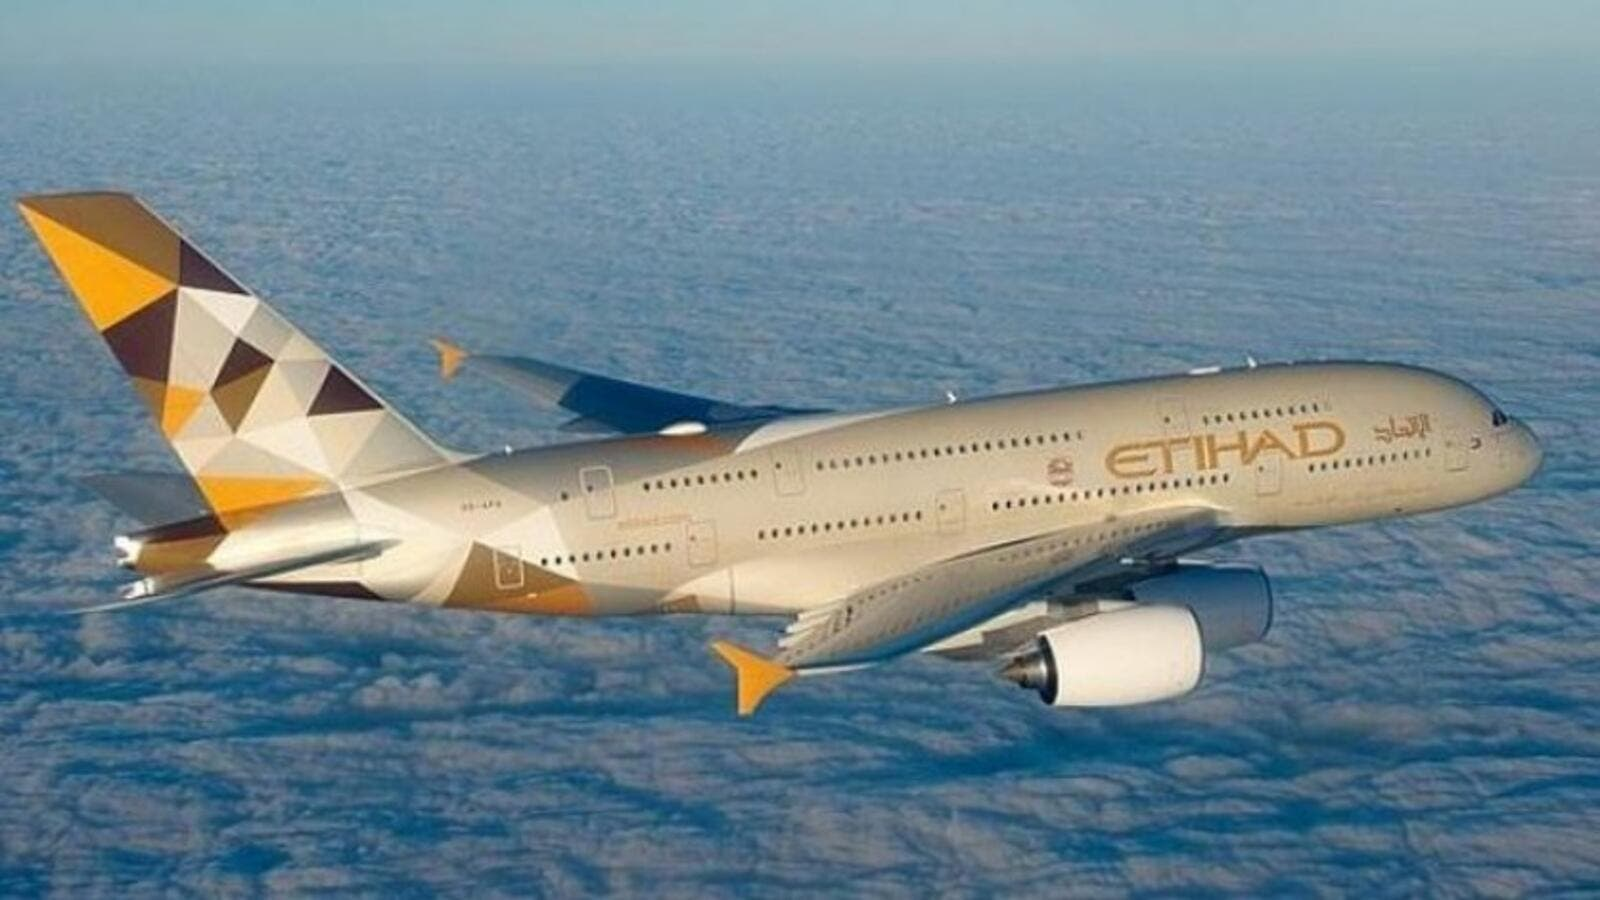 Etihad is planning to carry 19 million passengers this year, an increase on the 17.6 million in carried in 2015. (File photo)